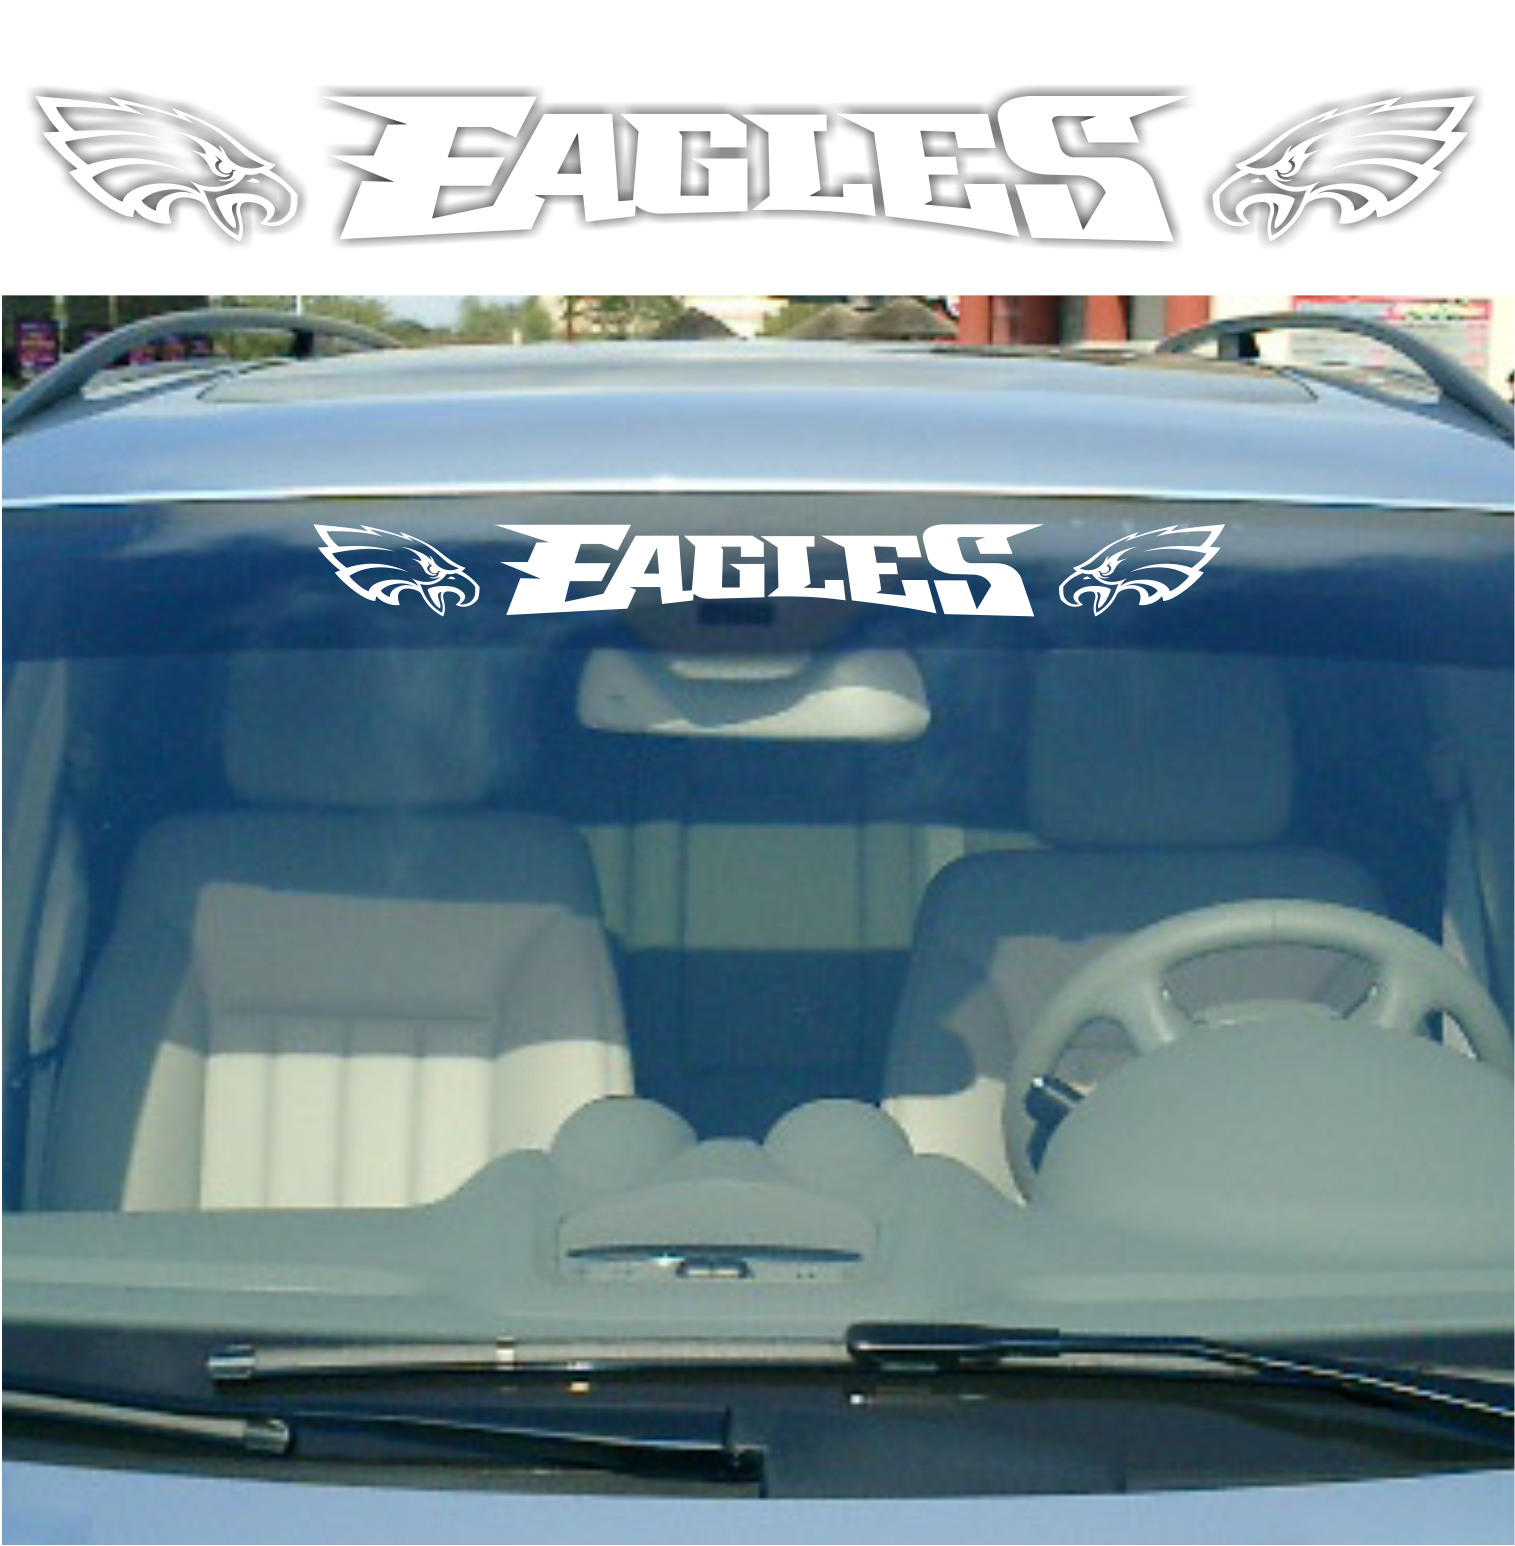 Philadelphia Eagles Vinyl Car Van Truck Decal Window Sticker